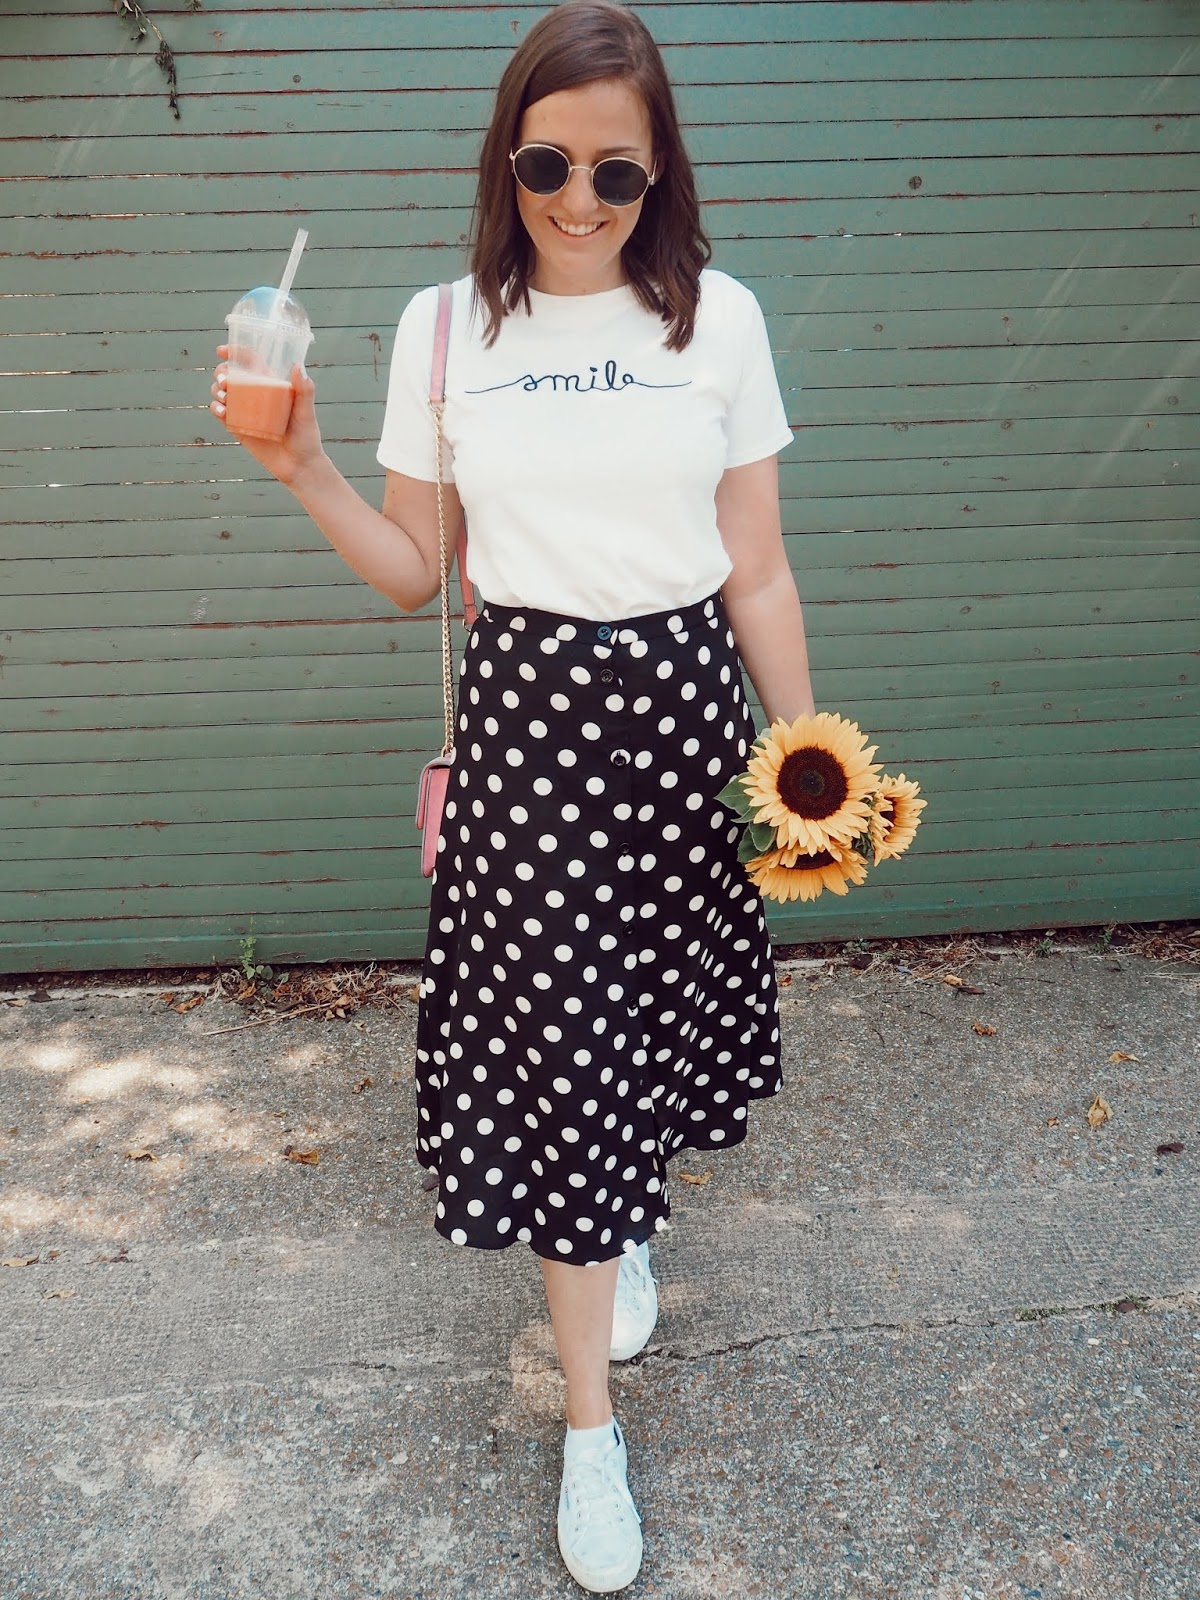 The Polka Dot Skirt - My Go To Summer Outfit // Lauren Rose Style Fashion Blogger Street Style London OOTD WIWT